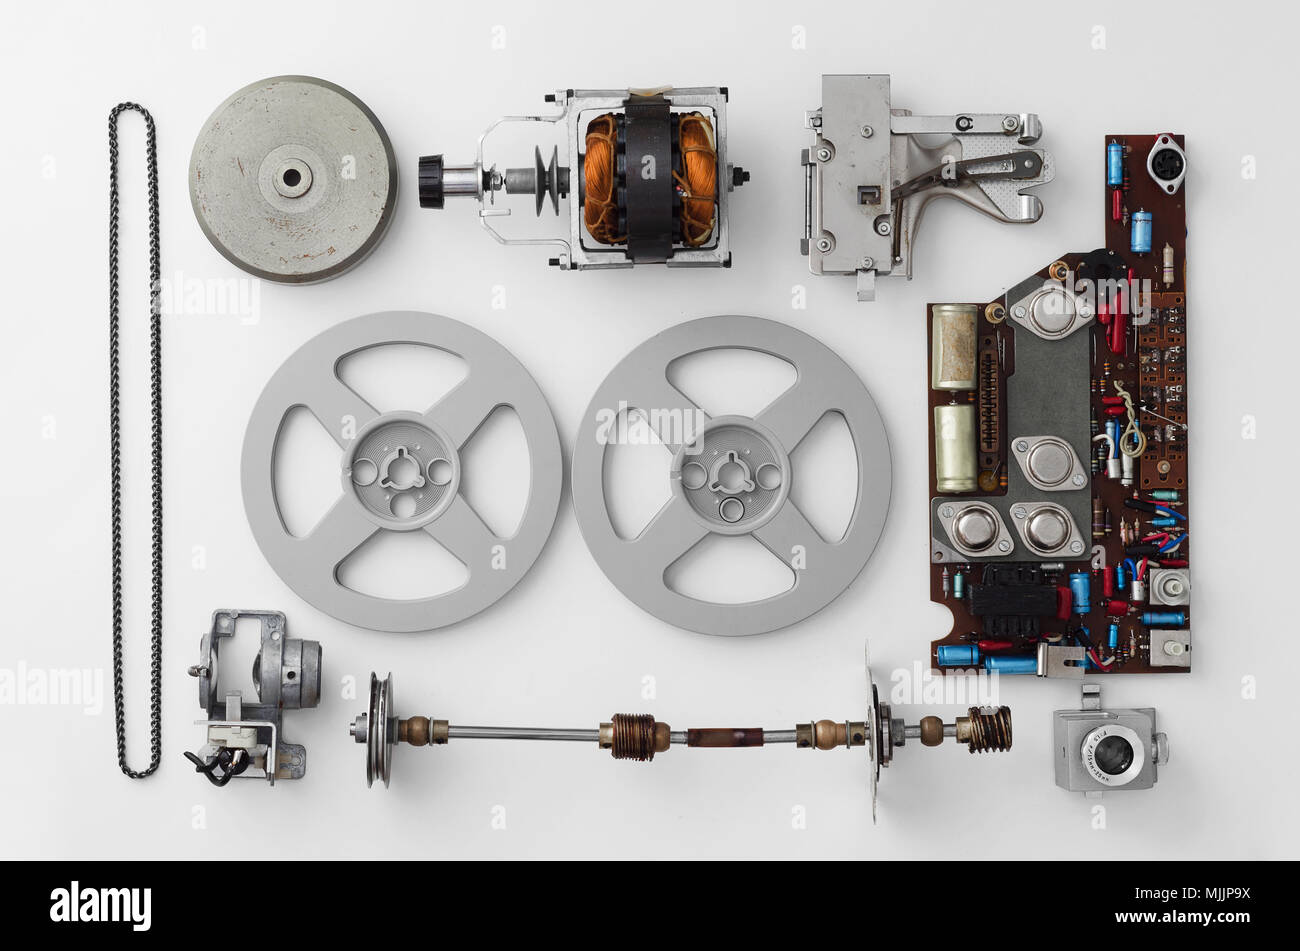 Parts of a vintage film projector well arranged over white background, above view. This is part of a larger series. - Stock Image